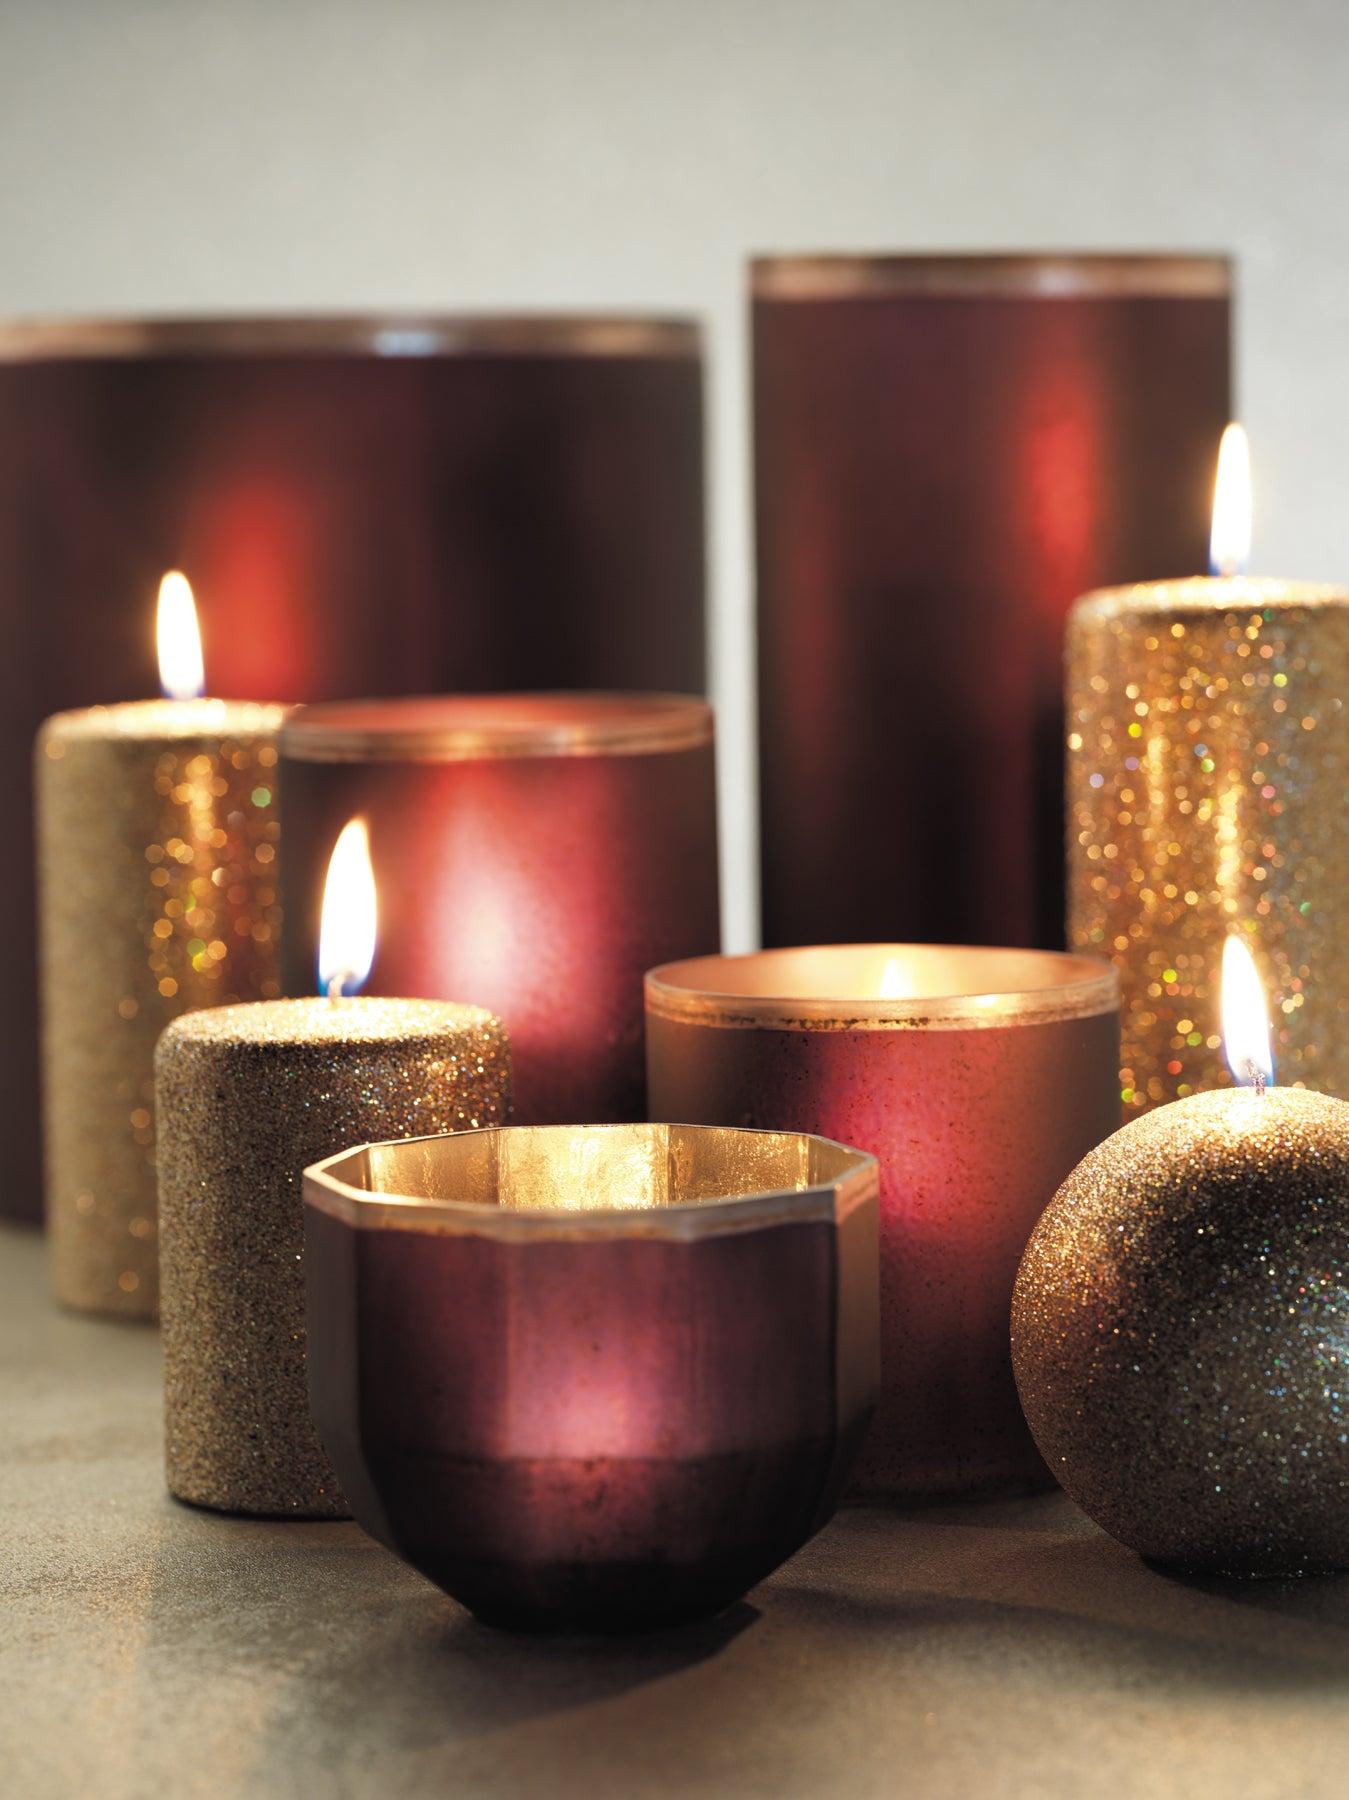 Emilie Faceted Mercury Candle Holders - Red - CARLYLE AVENUE